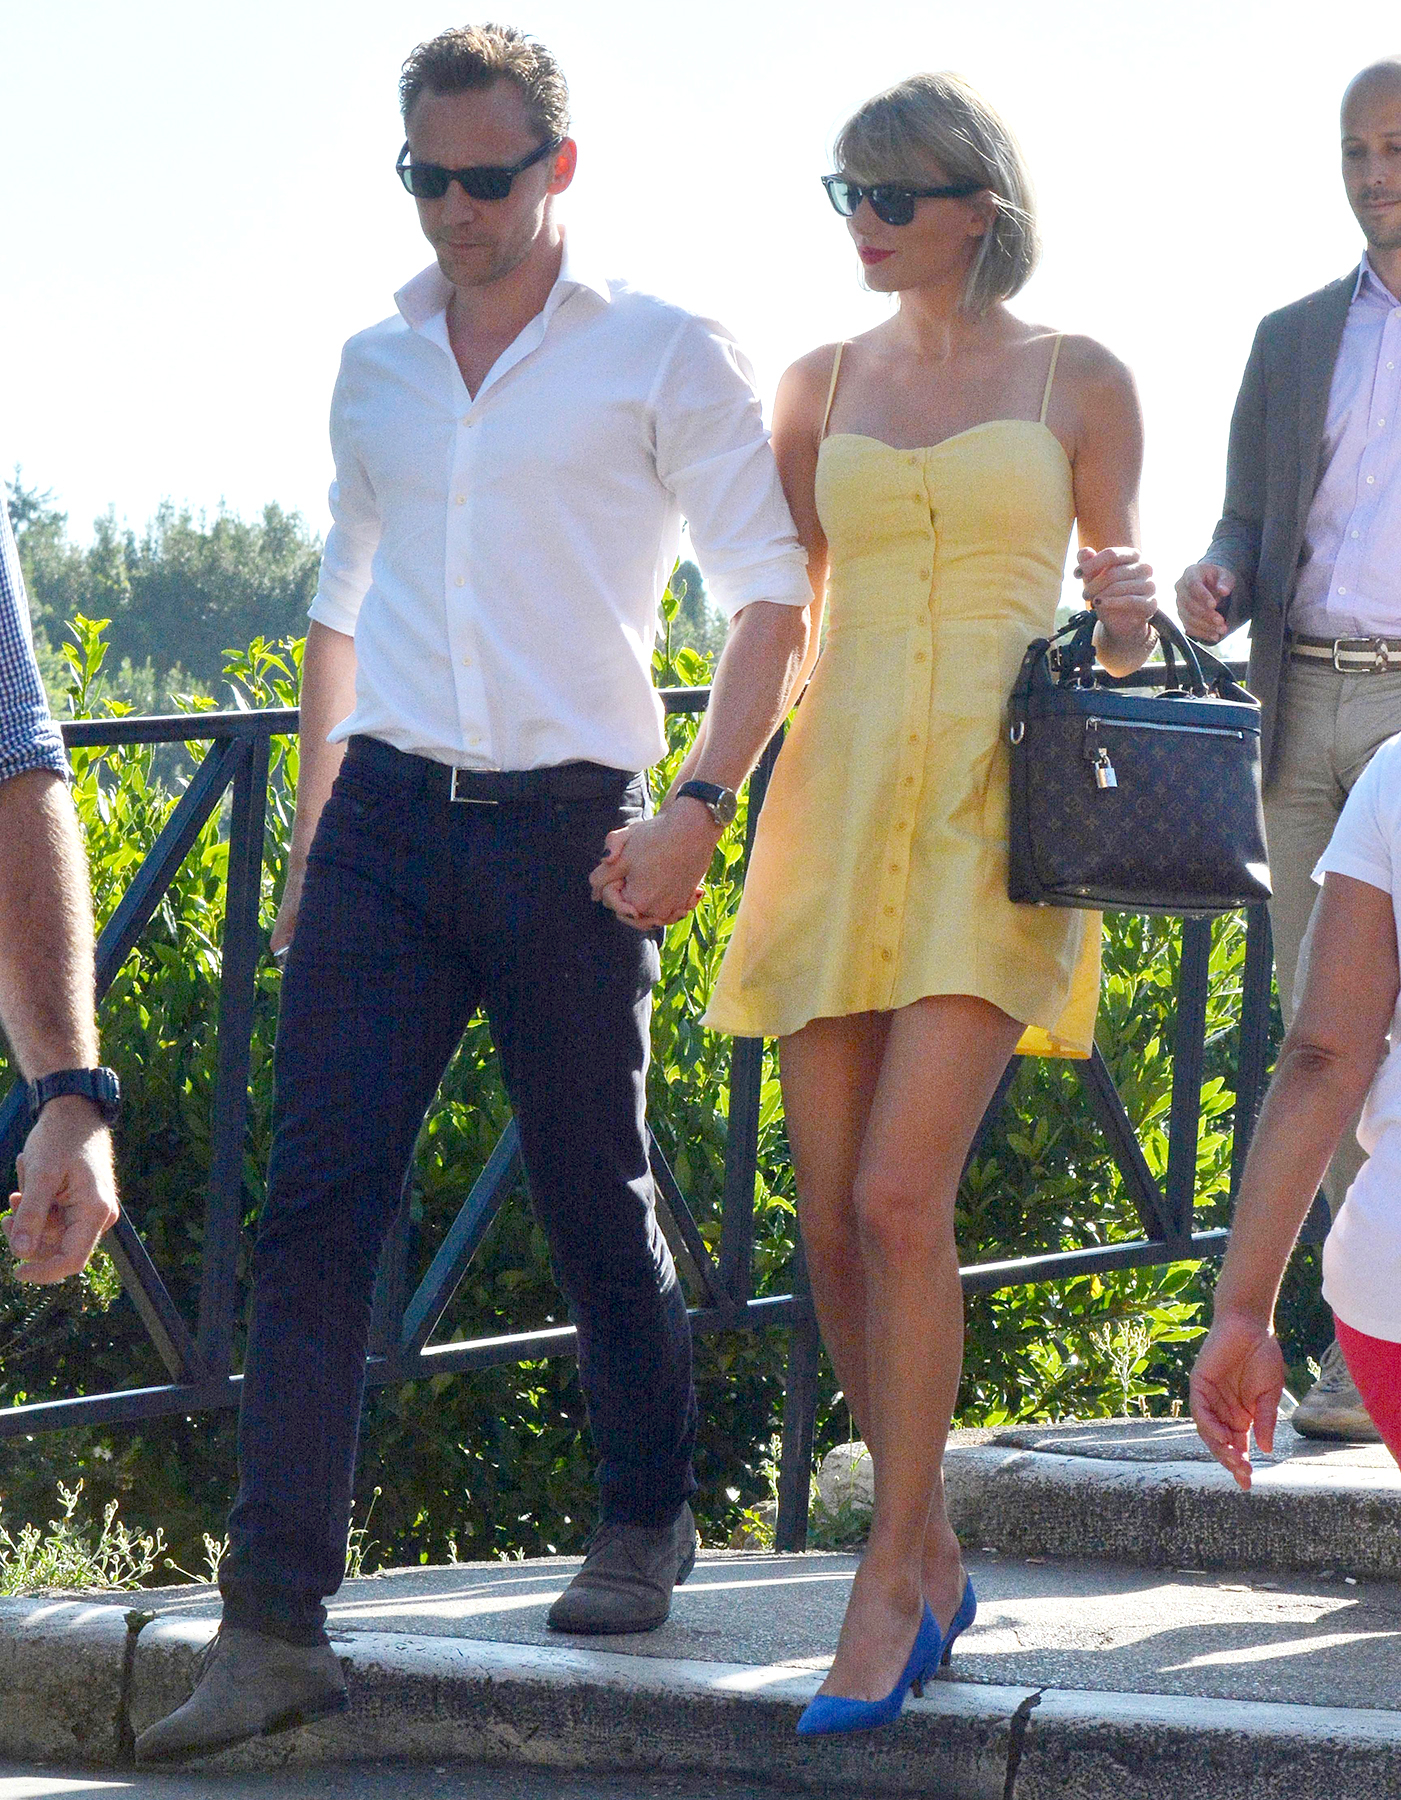 See Taylor Swifts Style During Rome Trip With Tom Hiddleston